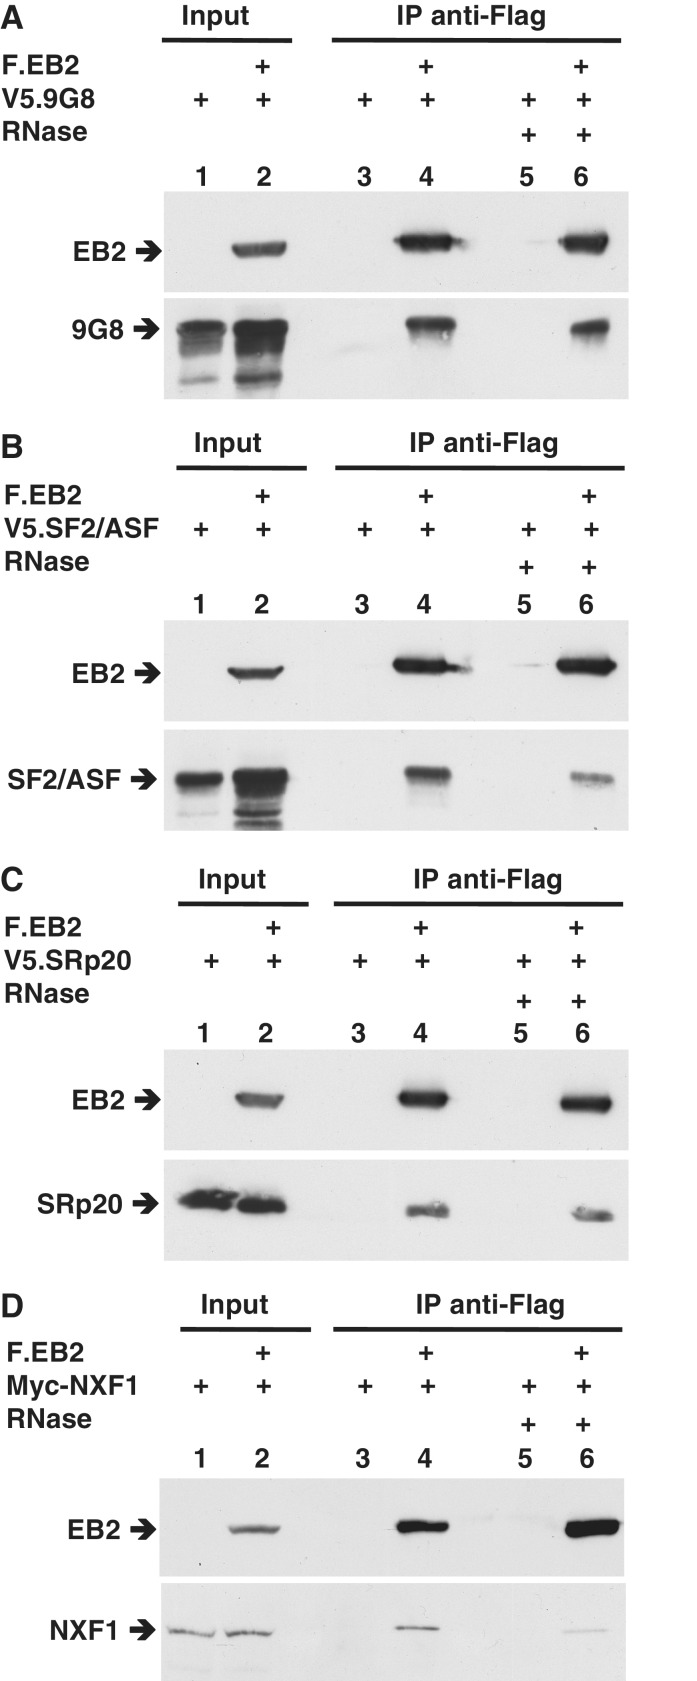 SRp20, 9G8 and SF2/ASF coimmunoprecipitate with EB2. V5-tagged 9G8 ( A ), V5-tagged SF2/ASF ( B ), V5-tagged SRp20 ( C ) or c-Myc-tagged NXF1 ( D ) were expressed by transient transfection in HEK293T cells either alone or together with Flag-tagged EB2. Lysates were prepared and immunoprecipitations performed using an M2 anti-Flag mAb affinity gel in presence or absence of RNAse. The immunoprecipitated complexes were then analysed by western blotting using an anti-Flag polyclonal antibody to visualize EB2, an anti-V5 polyclonal antibody to visualize 9G8, SF2/ASF and SRp20 or an anti-c-Myc monoclonal antibody for NXF1. The 'input' corresponds to 15% of the material present in the immunoprecipitated lysates.